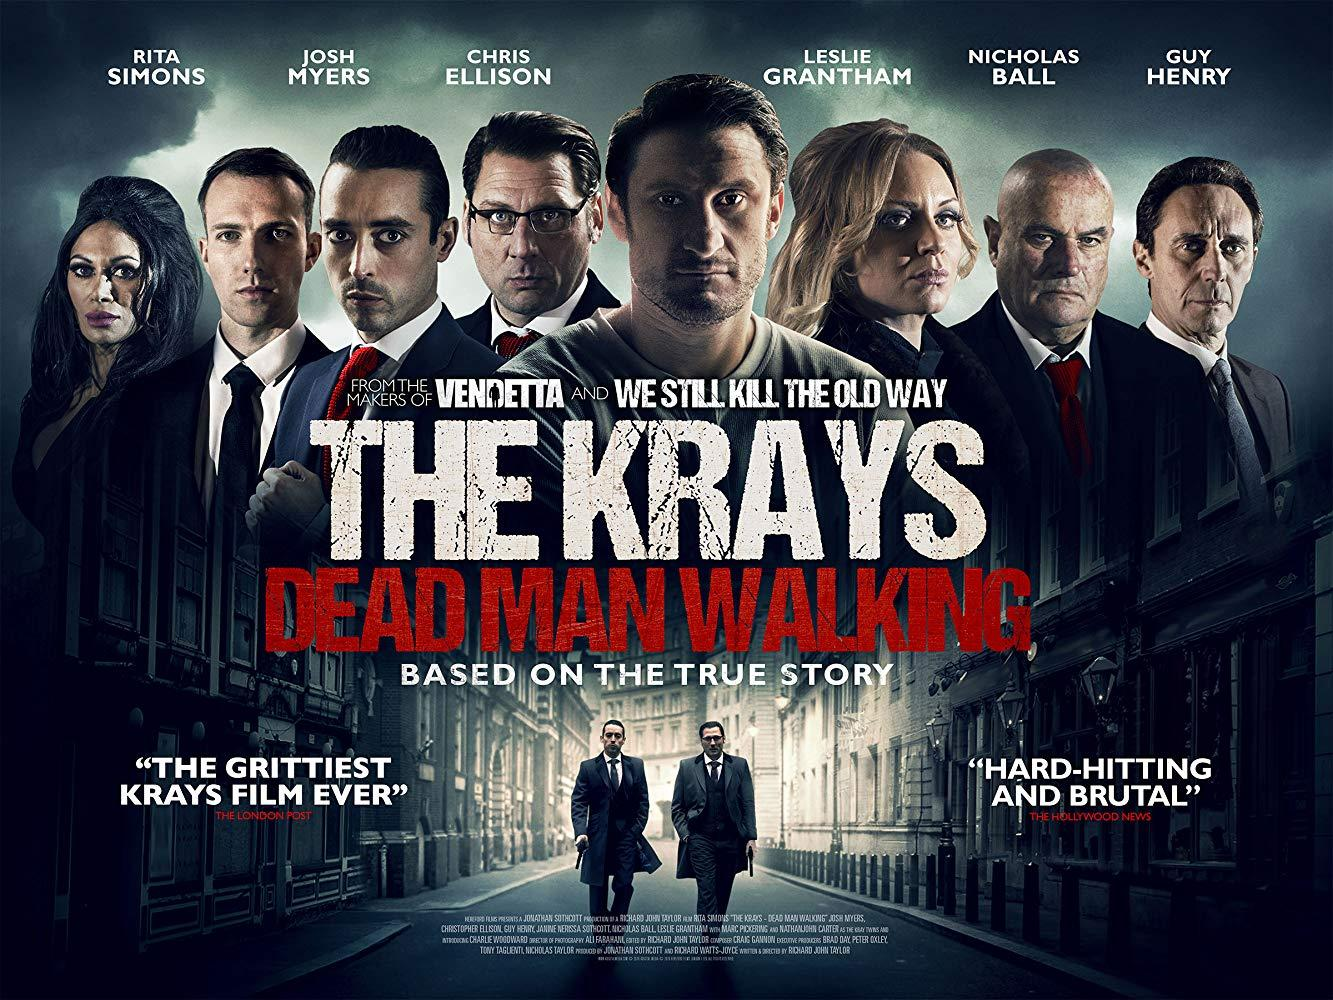 فيلم The Krays Dead Man Walking 2018 مترجم